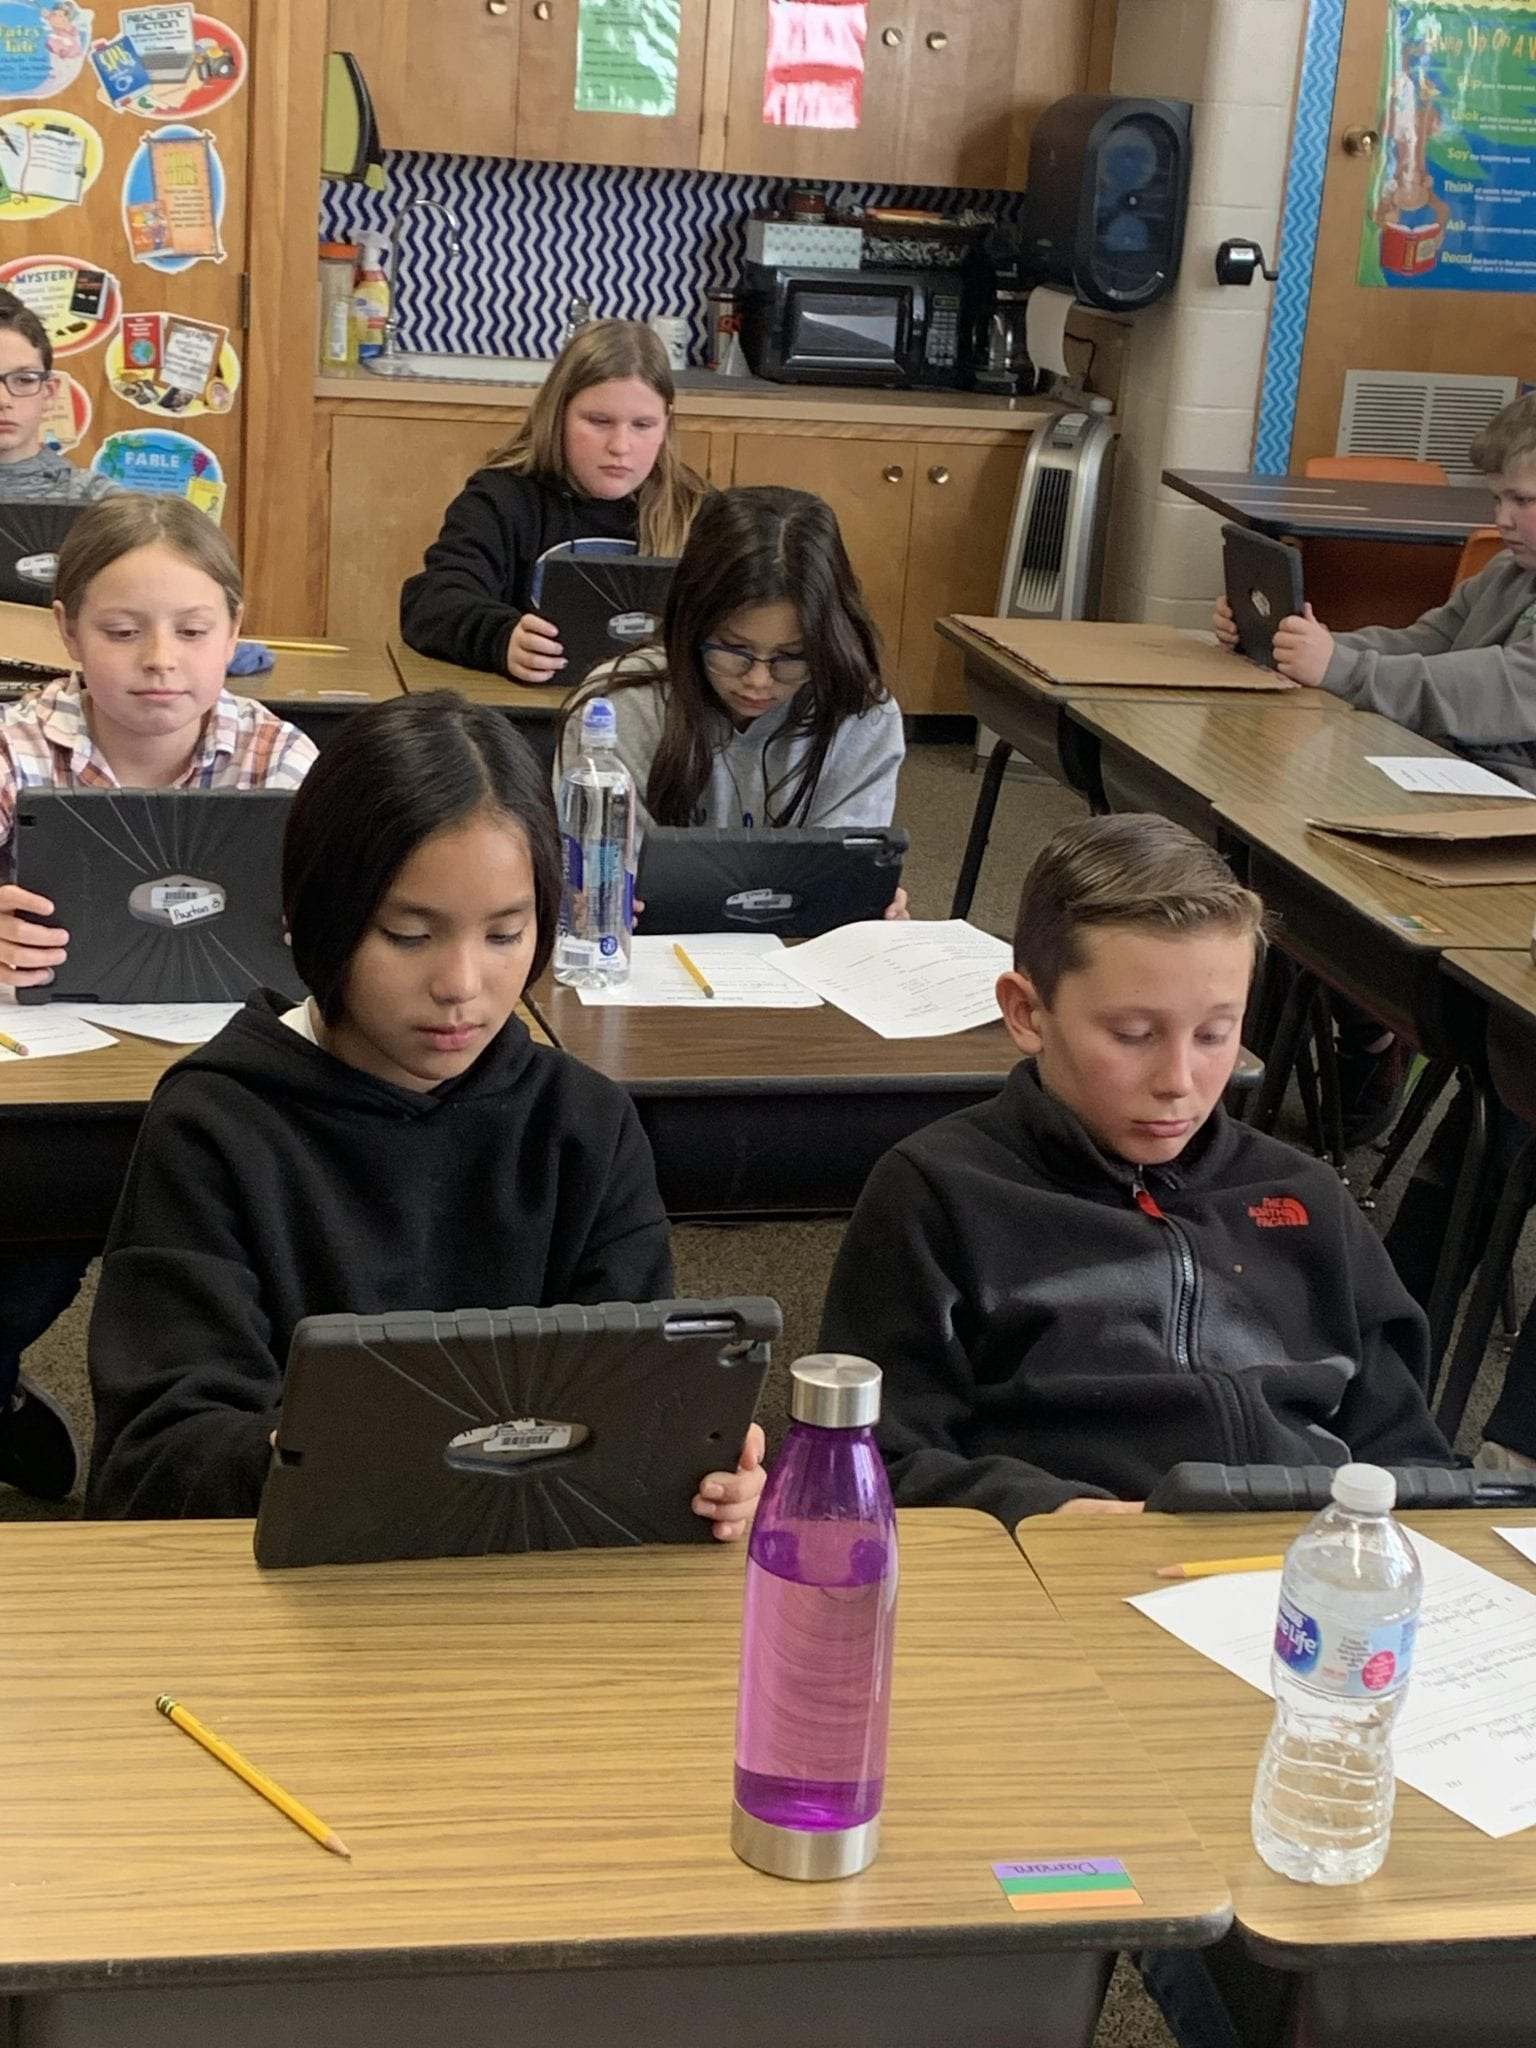 Students at Woodward Public Schools Using Technology